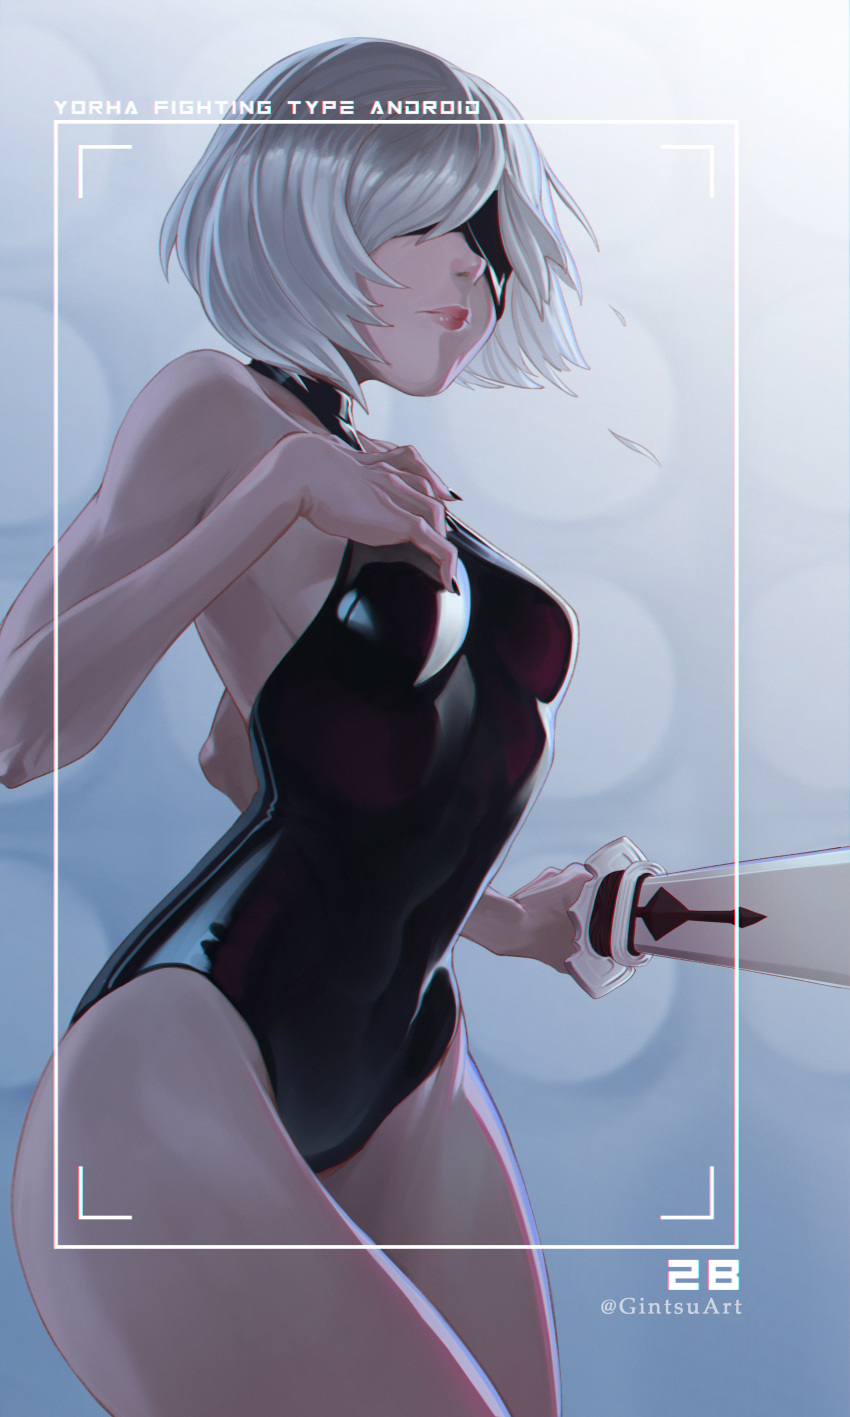 1girl absurdres black_blindfold black_leotard black_nails blindfold breasts character_name covered_eyes english_commentary fingernails gintsu highres holding holding_sword holding_weapon latex latex_leotard leotard lips medium_breasts nier_(series) nier_automata no_mole nose pink_lips sharp_fingernails short_hair silver_hair skin_tight solo sword weapon yorha_no._2_type_b